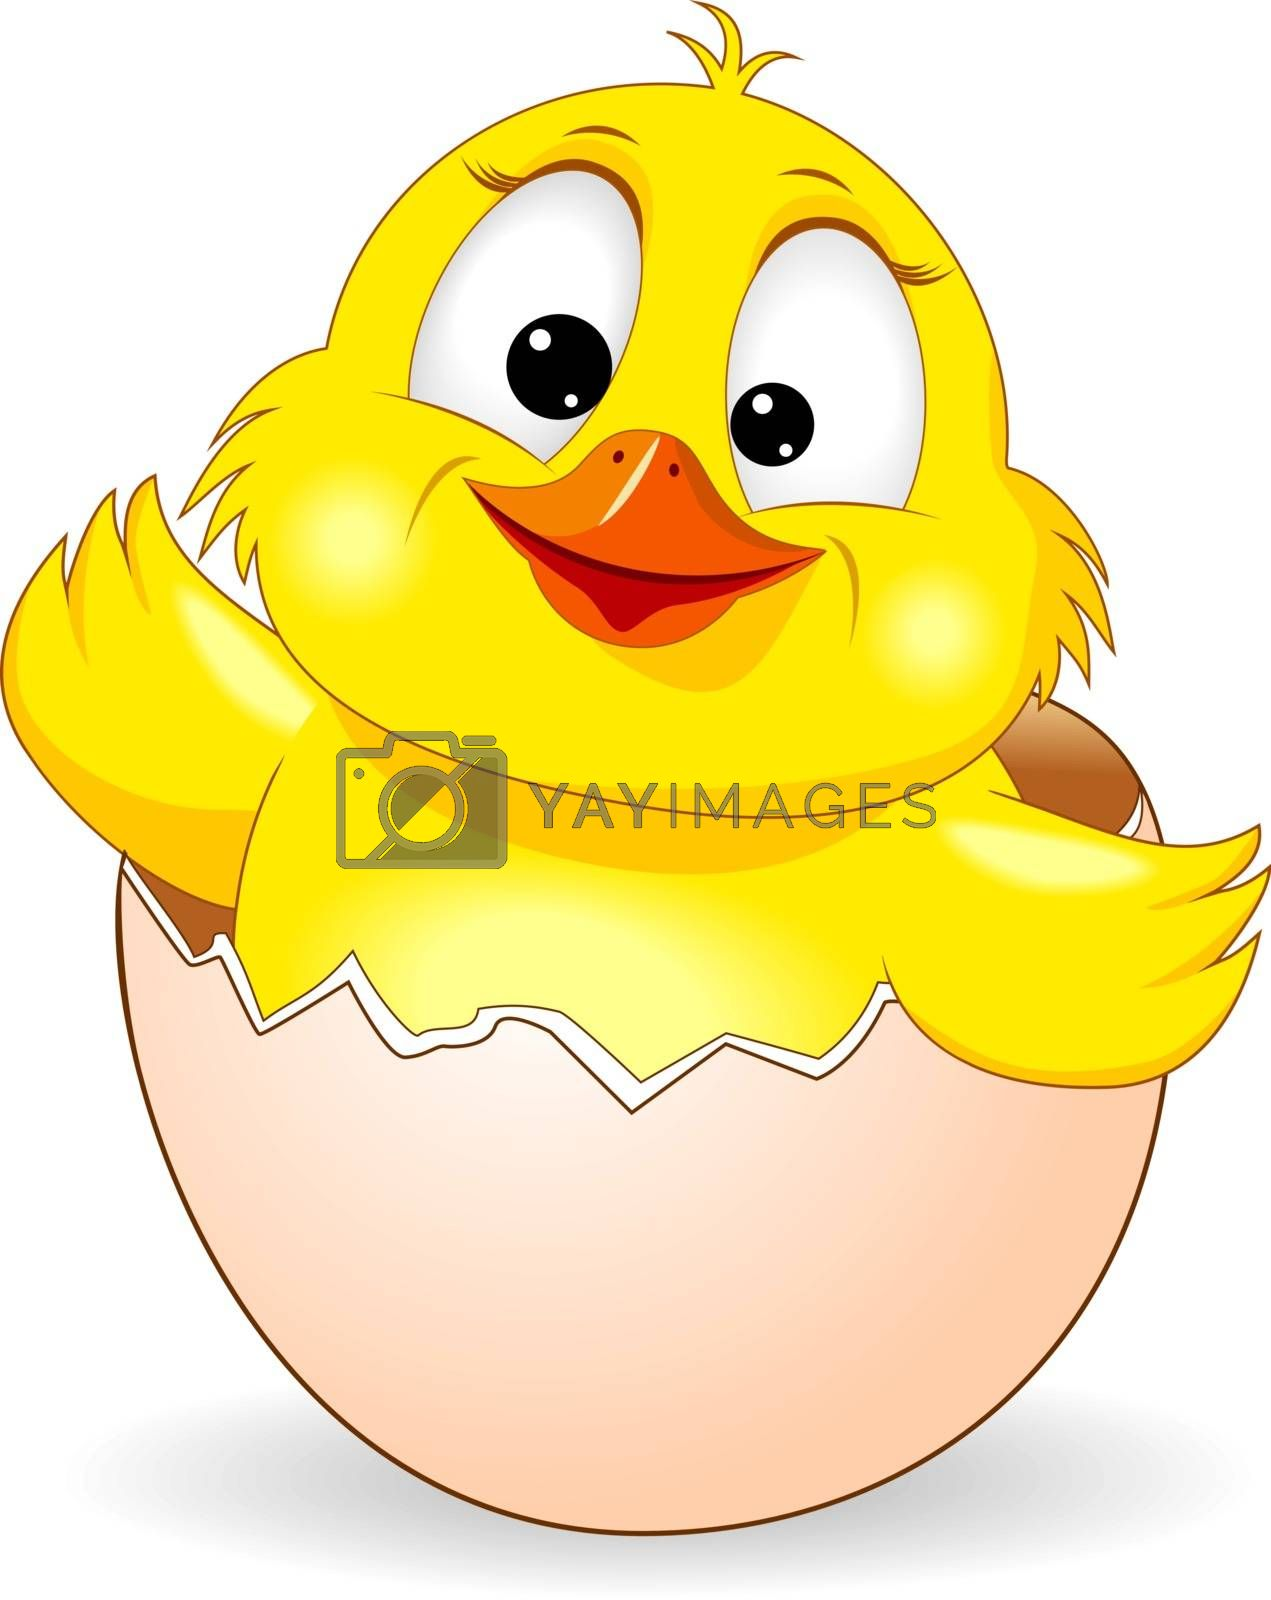 Little yellow chicken on white background. Cartoon chick peeking out of an eggshell.